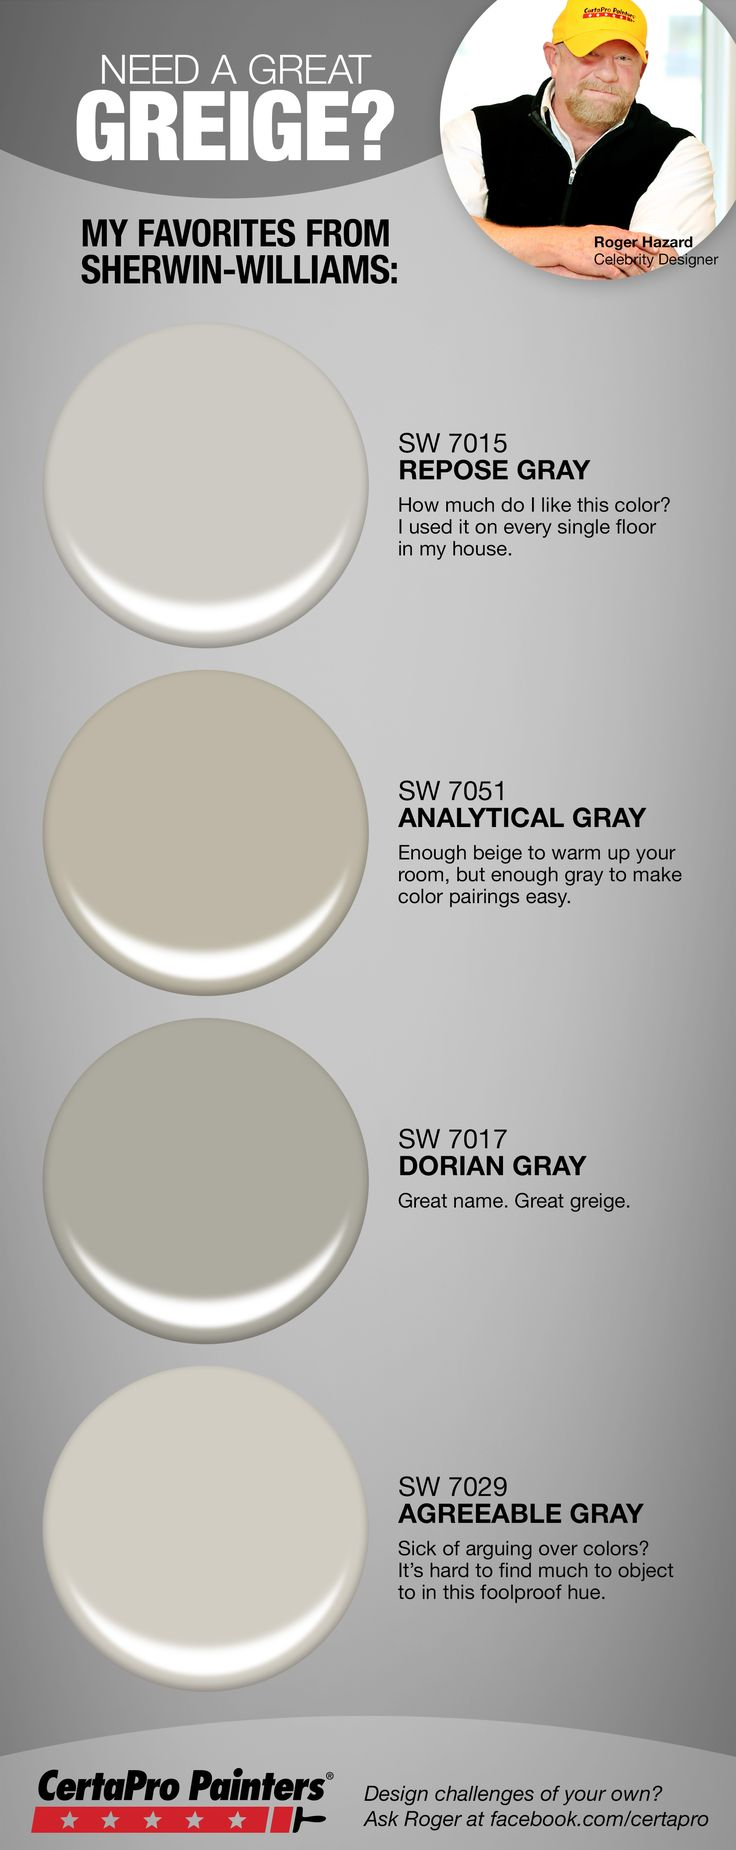 203 best images about BEIGE GREIGE on Pinterest